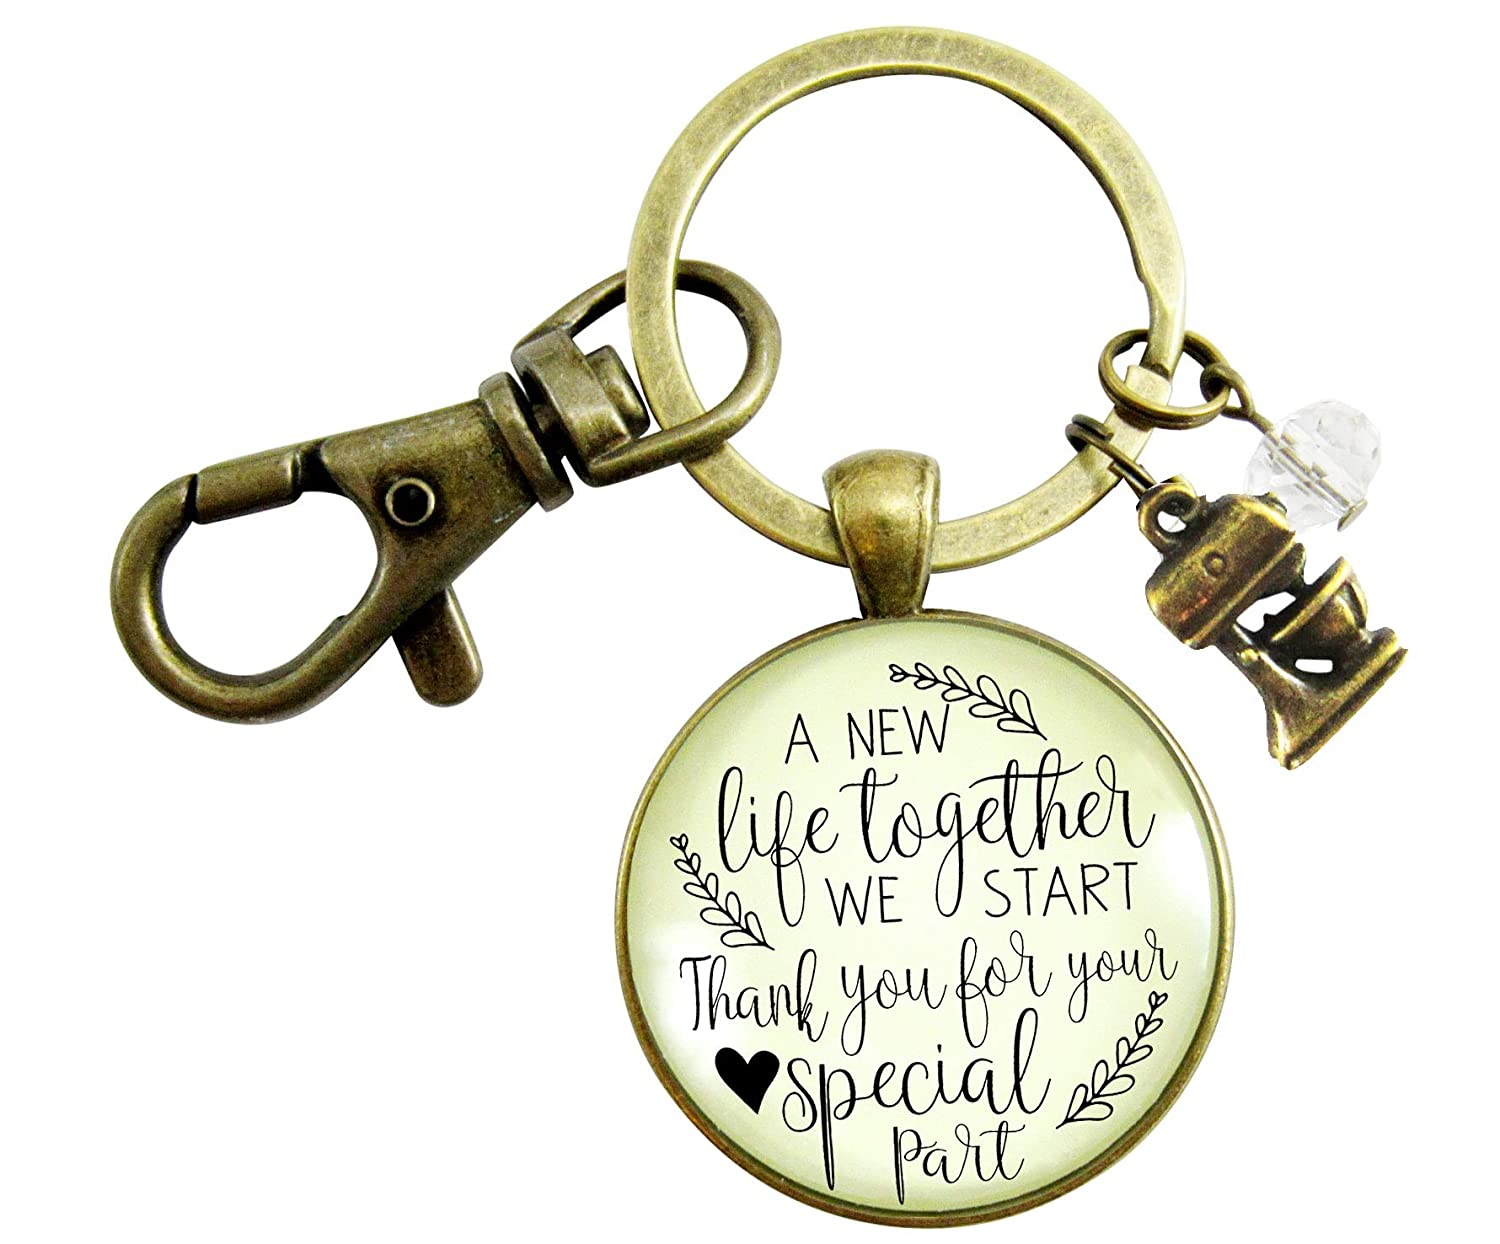 Wedding Cake Maker Gift Keychain A New Life We Start Rustic Jewelry Thanks Baker Mixer Charm Appreciation Note Card